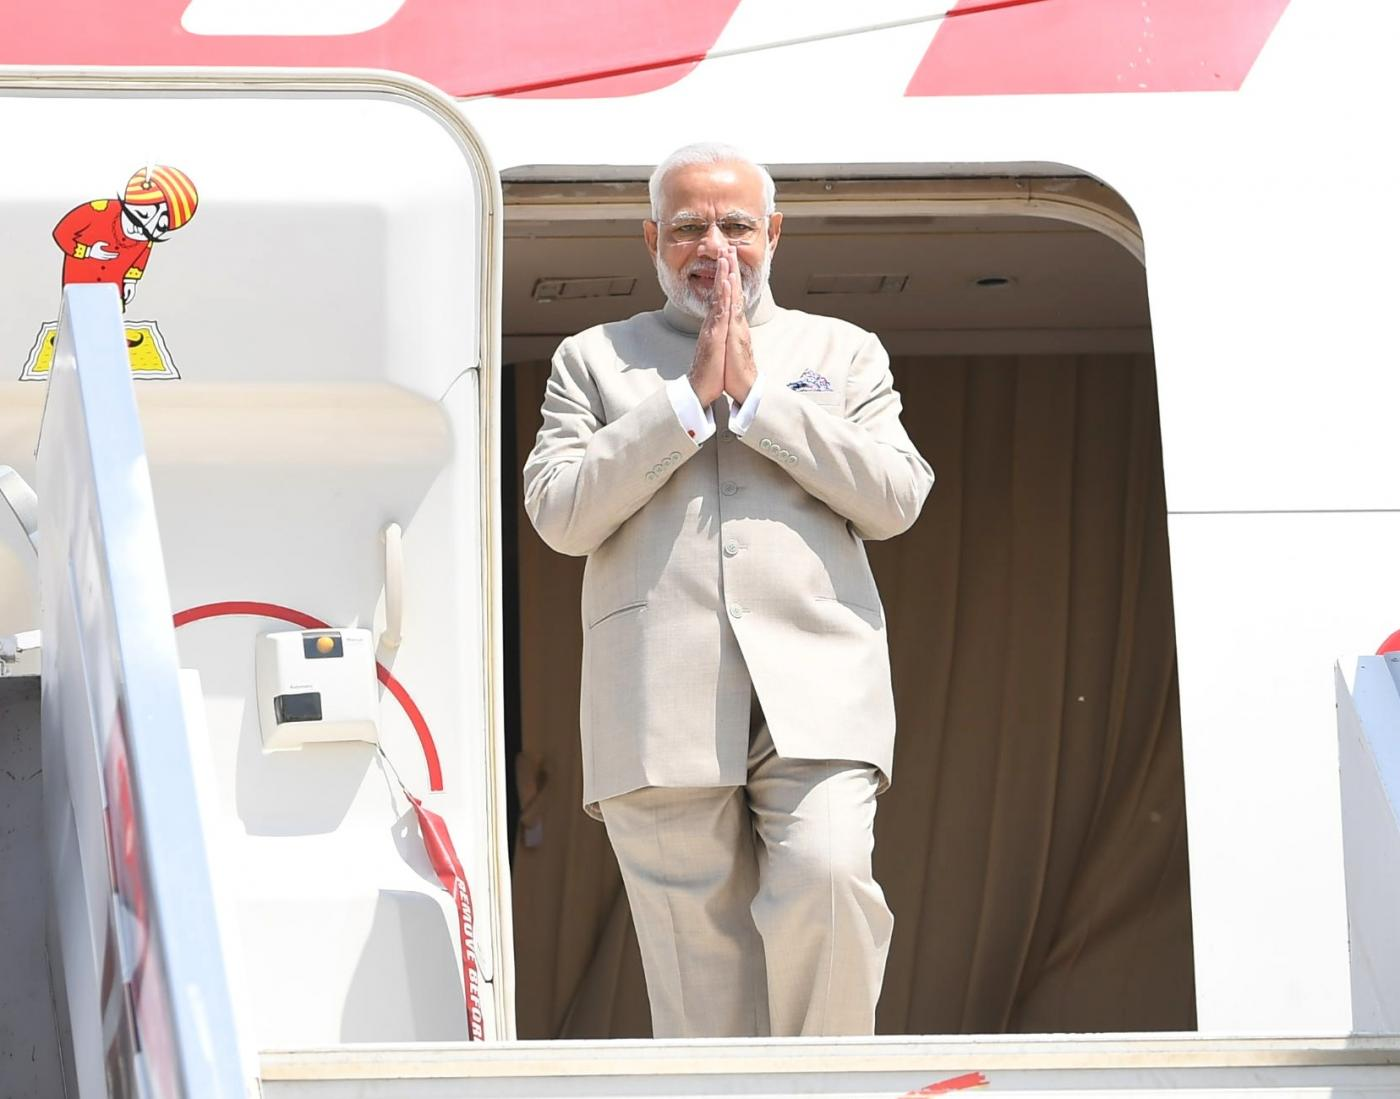 Kampala: Prime Minister Narendra Modi arrives in Kampala, Uganda for second leg of his three-nation state visit to Rwanda, Uganda and South Africa, on July 24, 2018. (Photo: IANS/MEA) by .